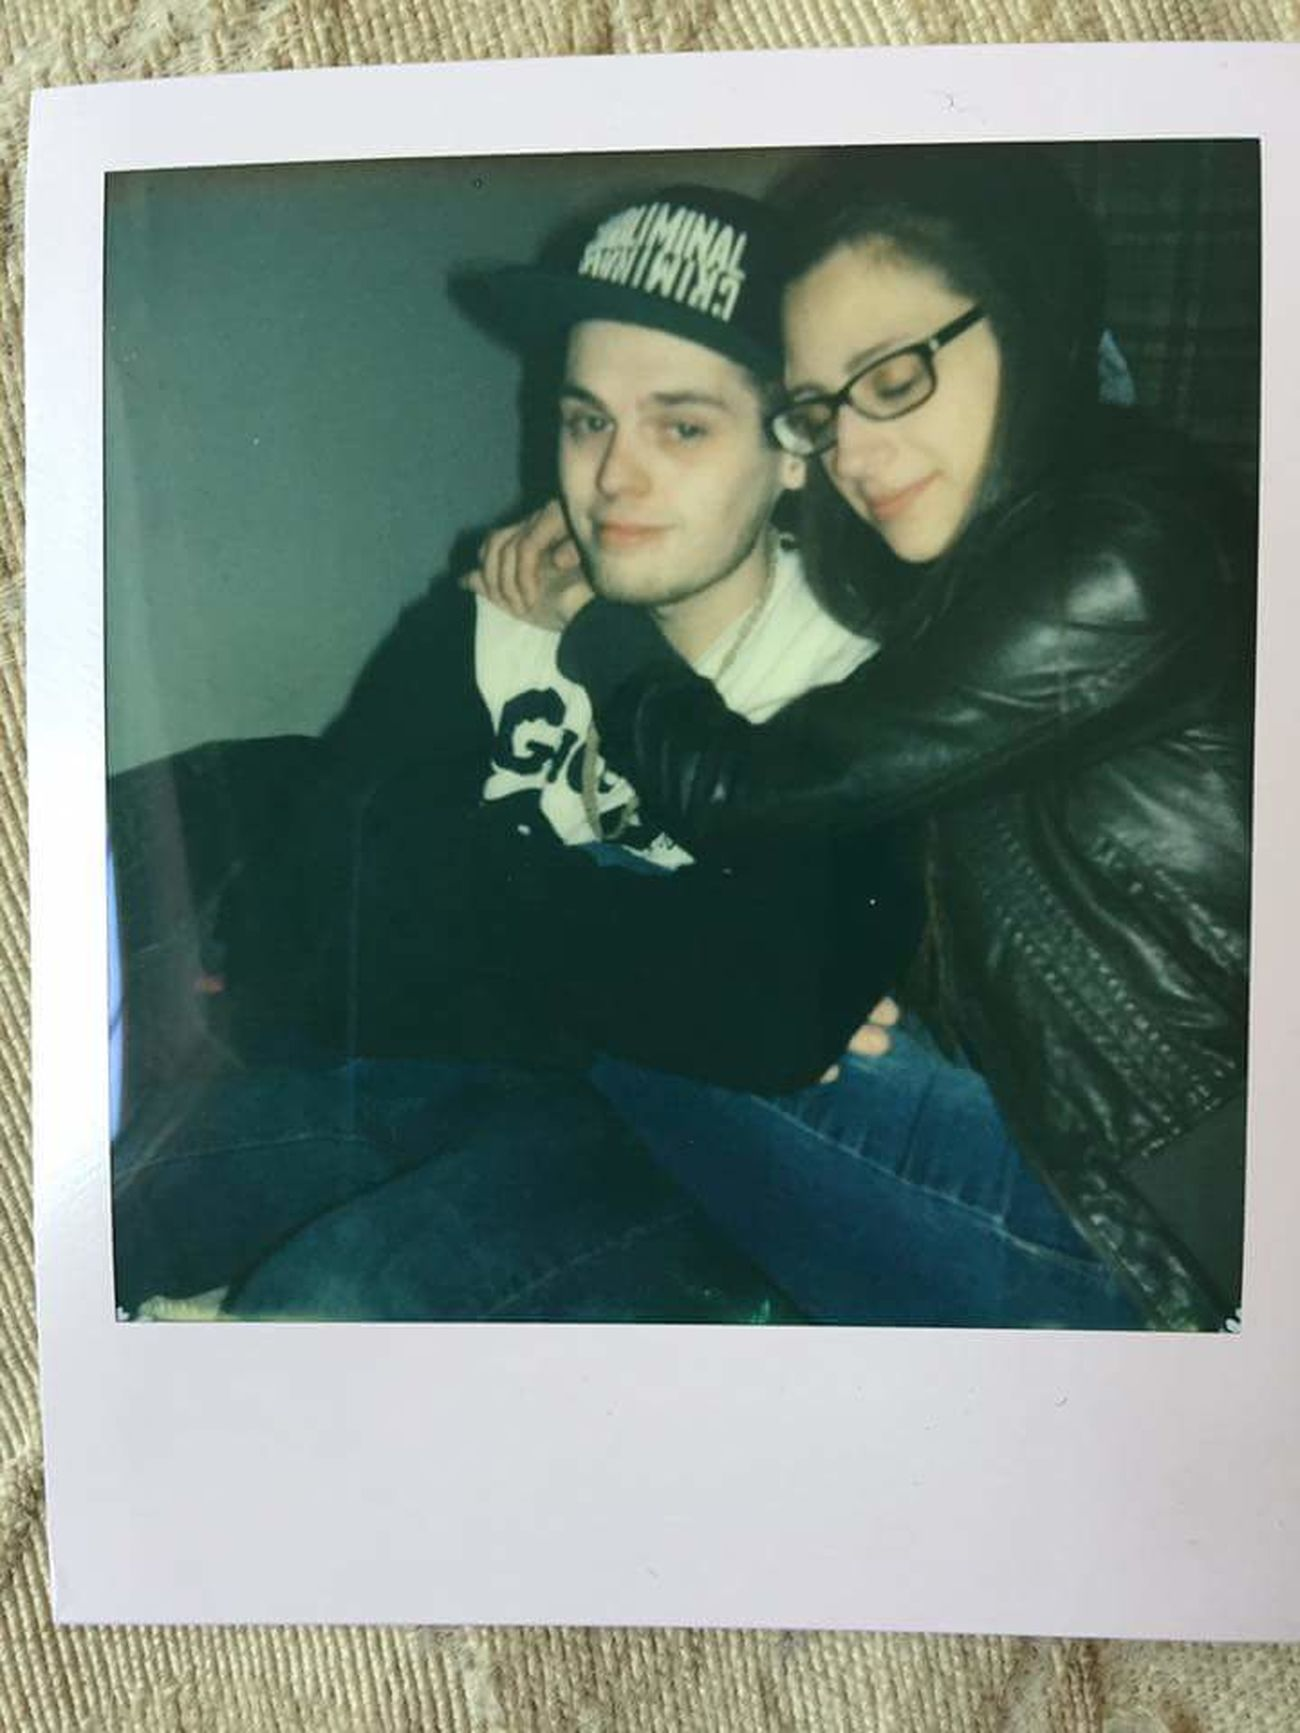 Polaroid Polaroid Film Polaroid Instant Polaroid Camera Adults Only Frame Dating Romance Women Portrait Young Adult Lifestyles Love Two People Young Women Subliminal Criminal Subliminalcriminal Sftp Stray From The Path Strayfromthepath Architects Architectsuk Architectshc